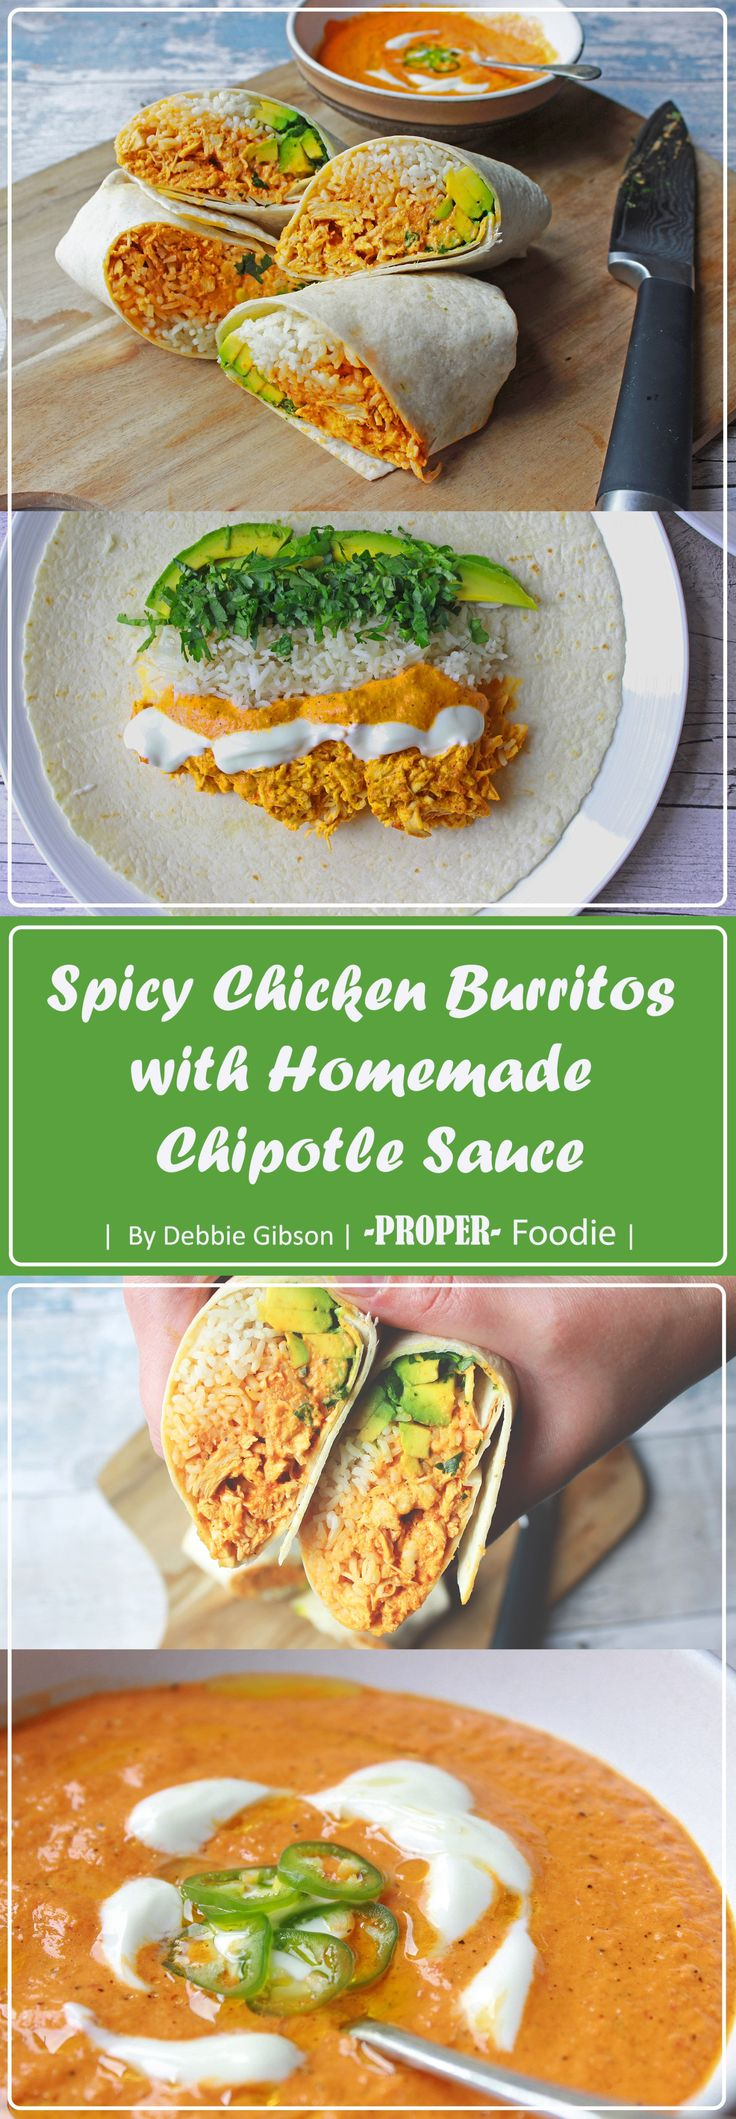 Dive into these spicy chicken burritos with fiery homemade chipotle sauce